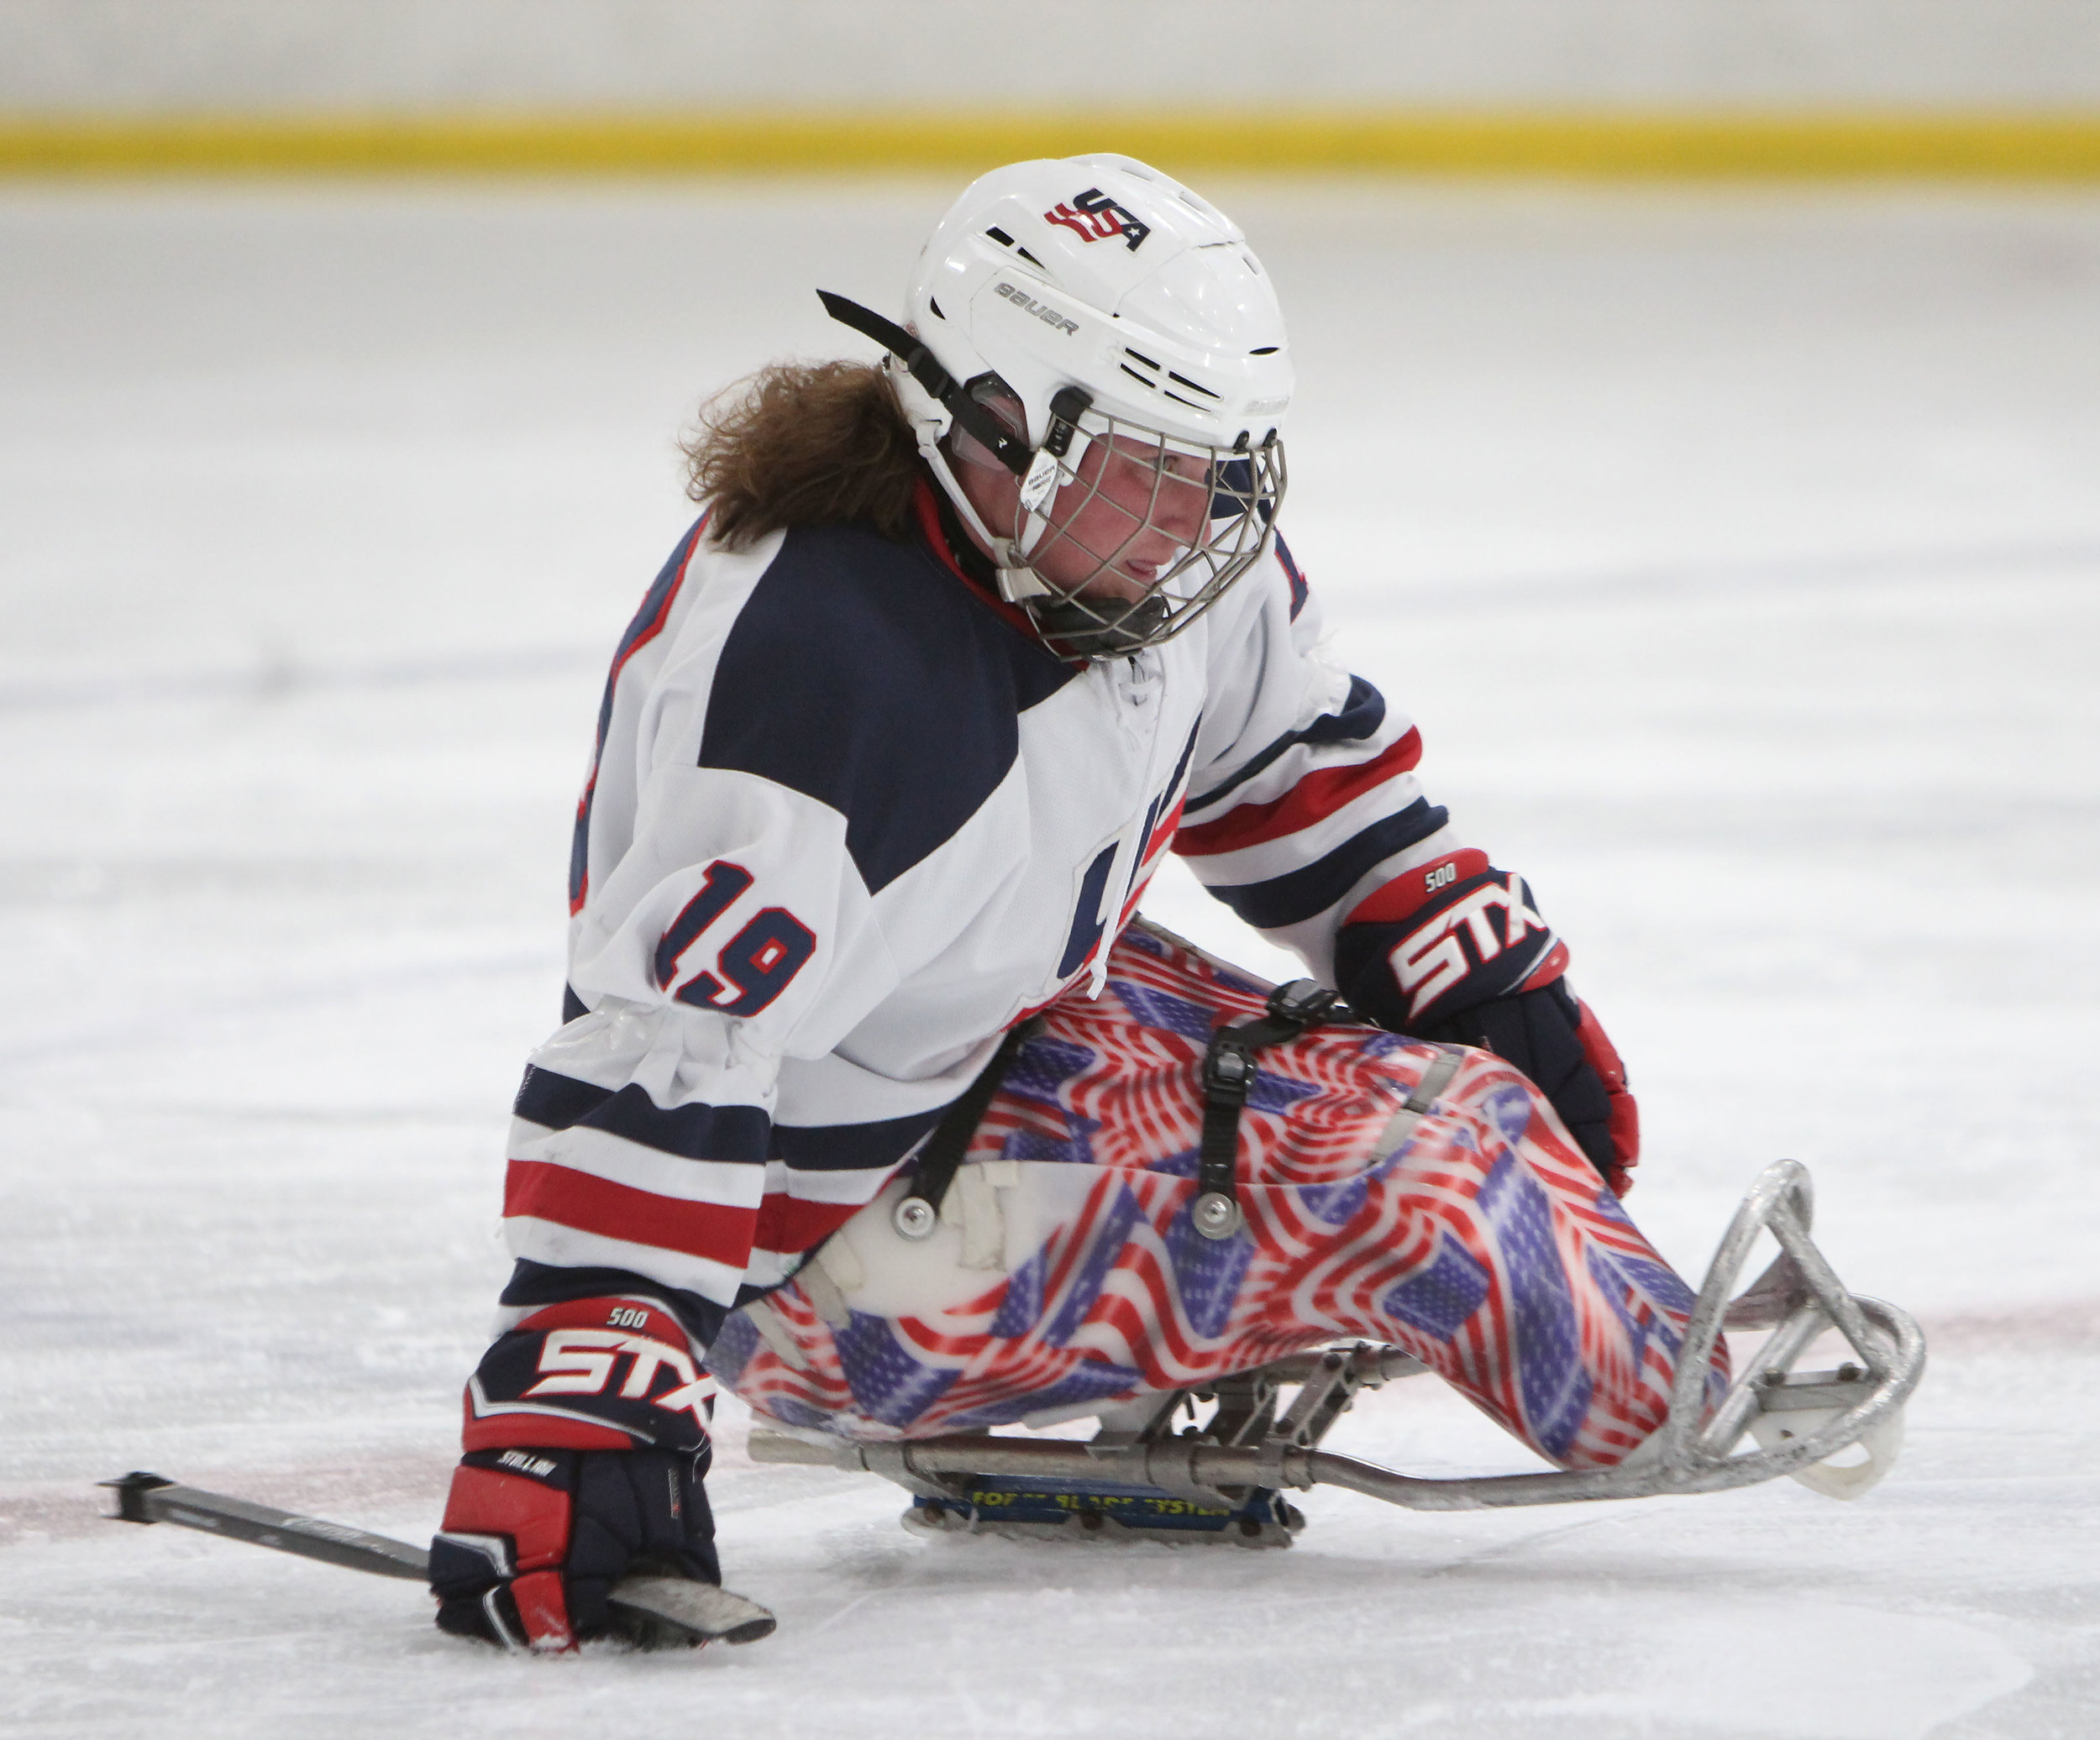 Kelli Anne Stallkamp, a USA Disabled Sled Hockey defender, skates towards the puck in a game against the Colorado Avalanche.